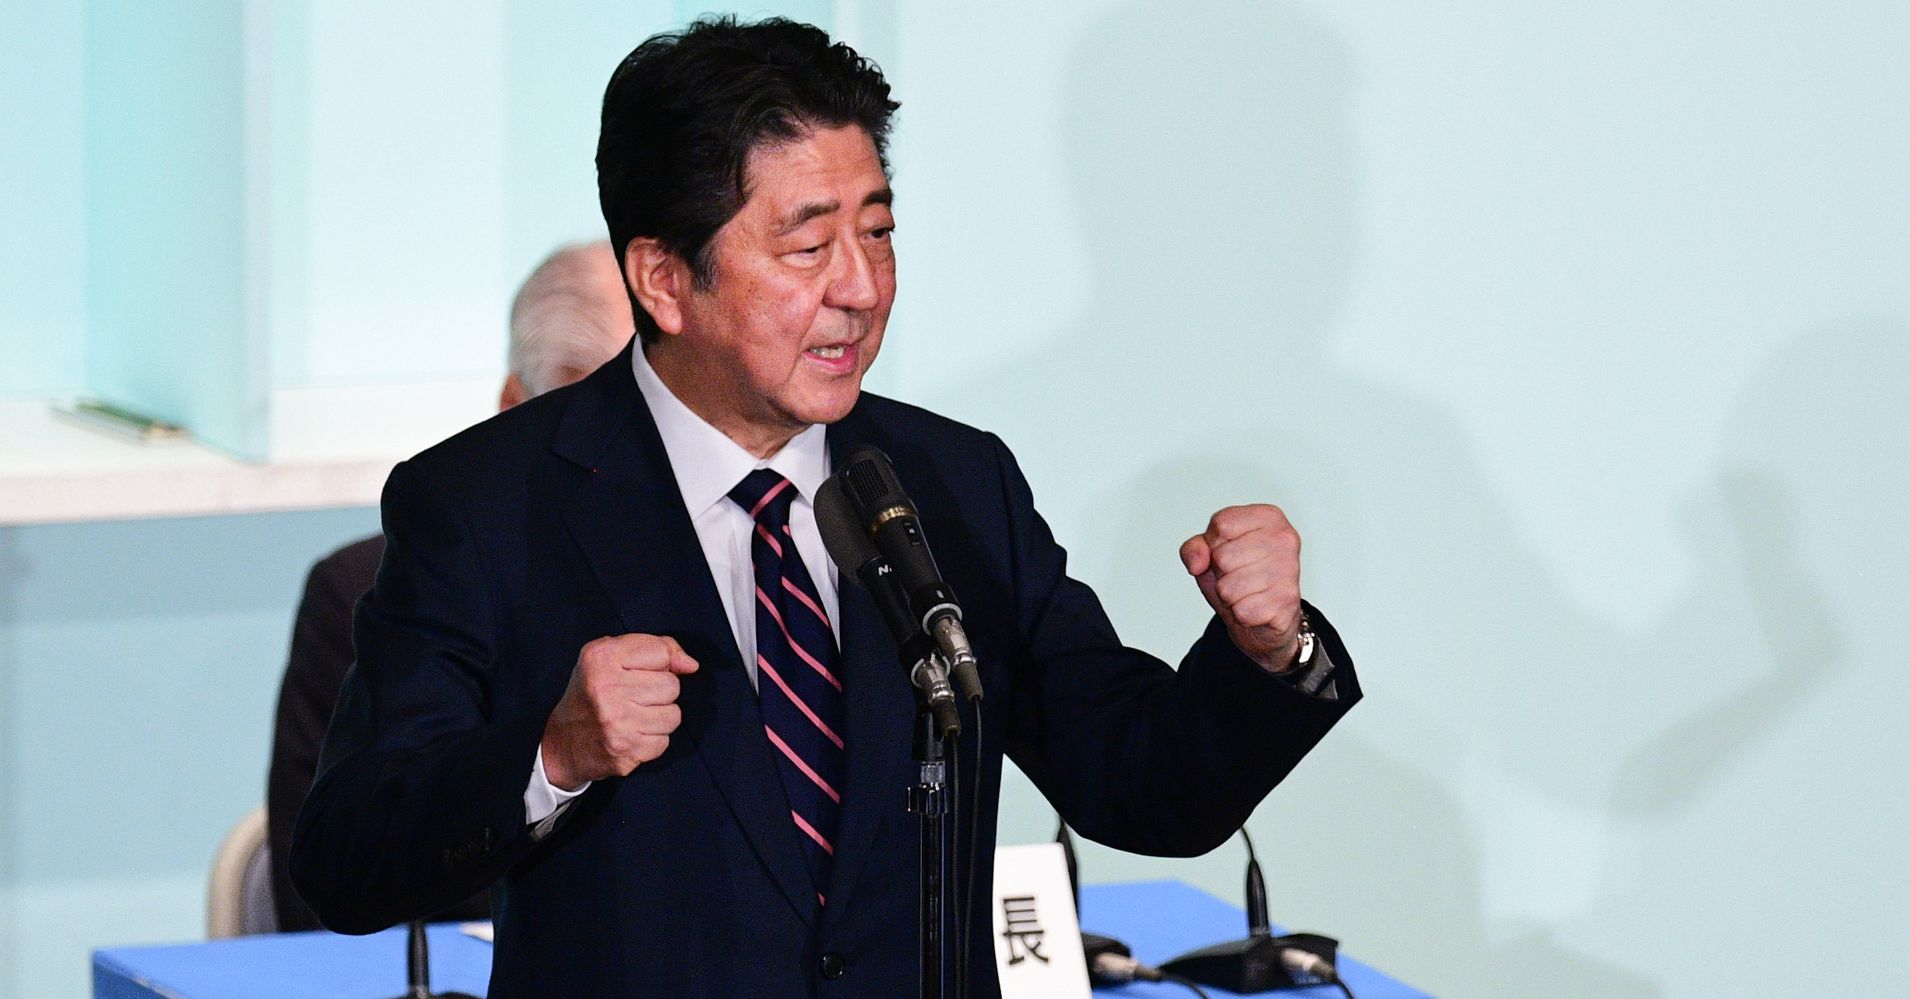 Japan PM Shinzo Abe Poised To Win 3rd Term | HuffPost